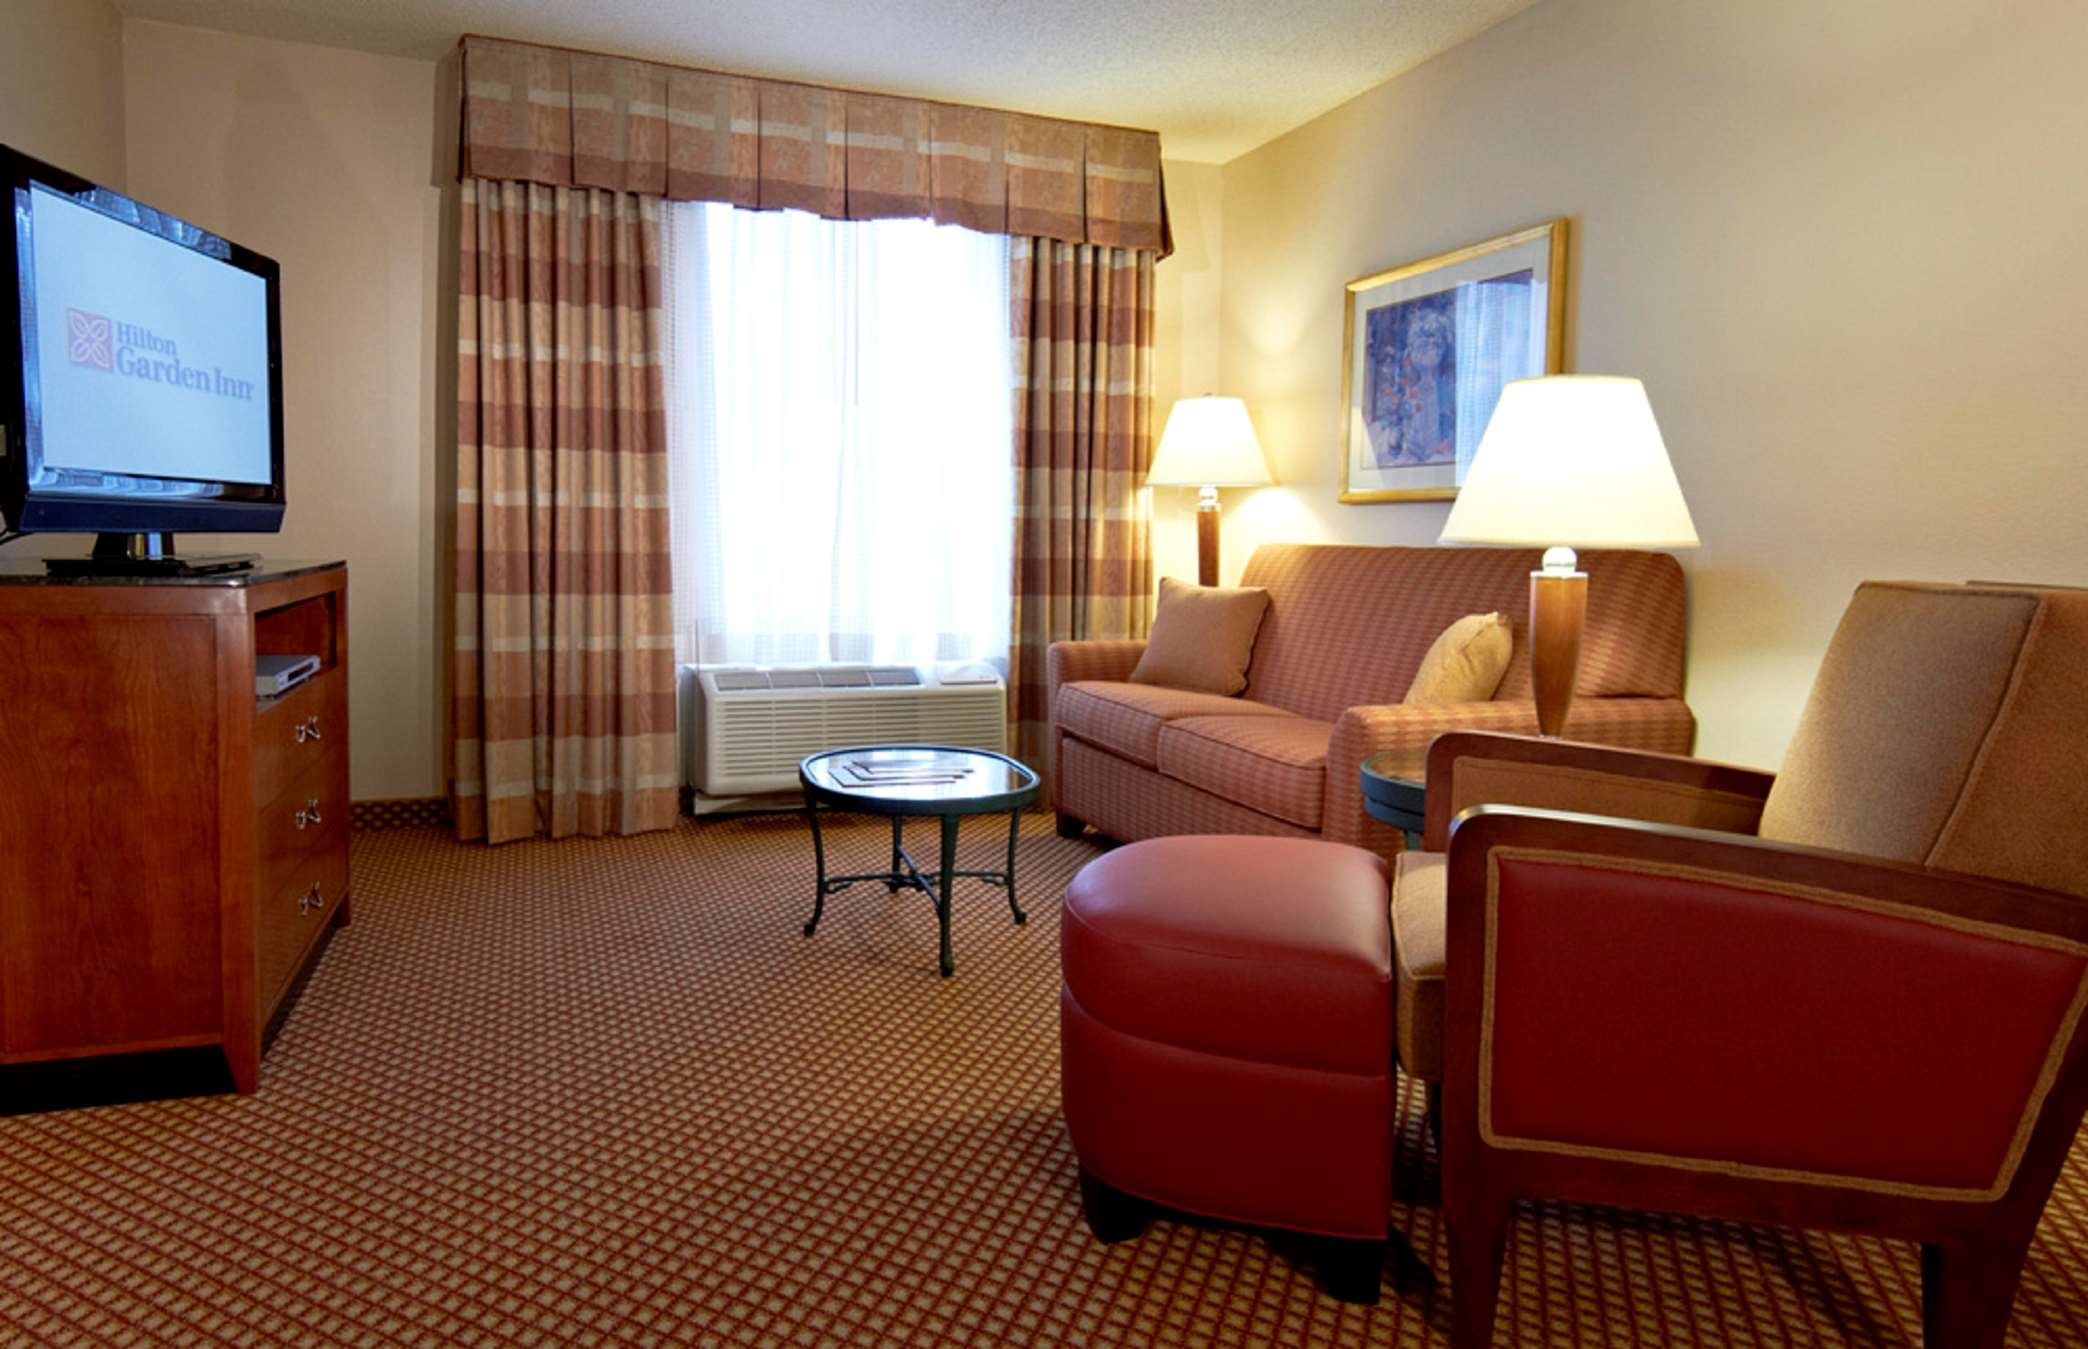 Hilton Garden Inn Denver Airport 16475 East 40th Circle Aurora, CO .